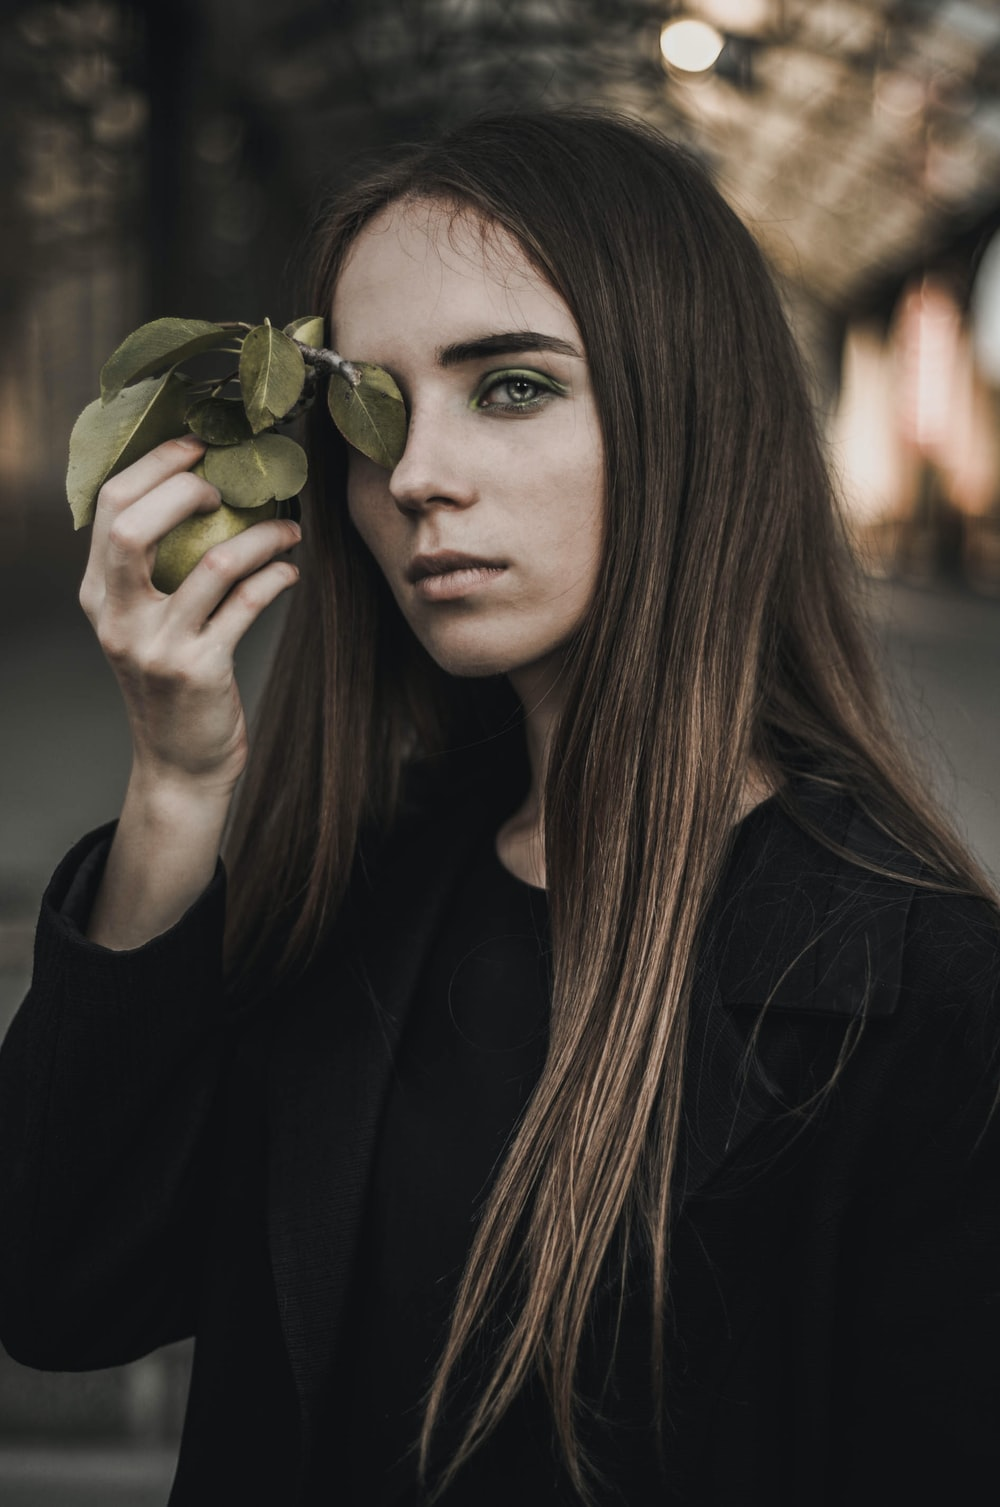 woman in black long sleeve shirt holding green fruit